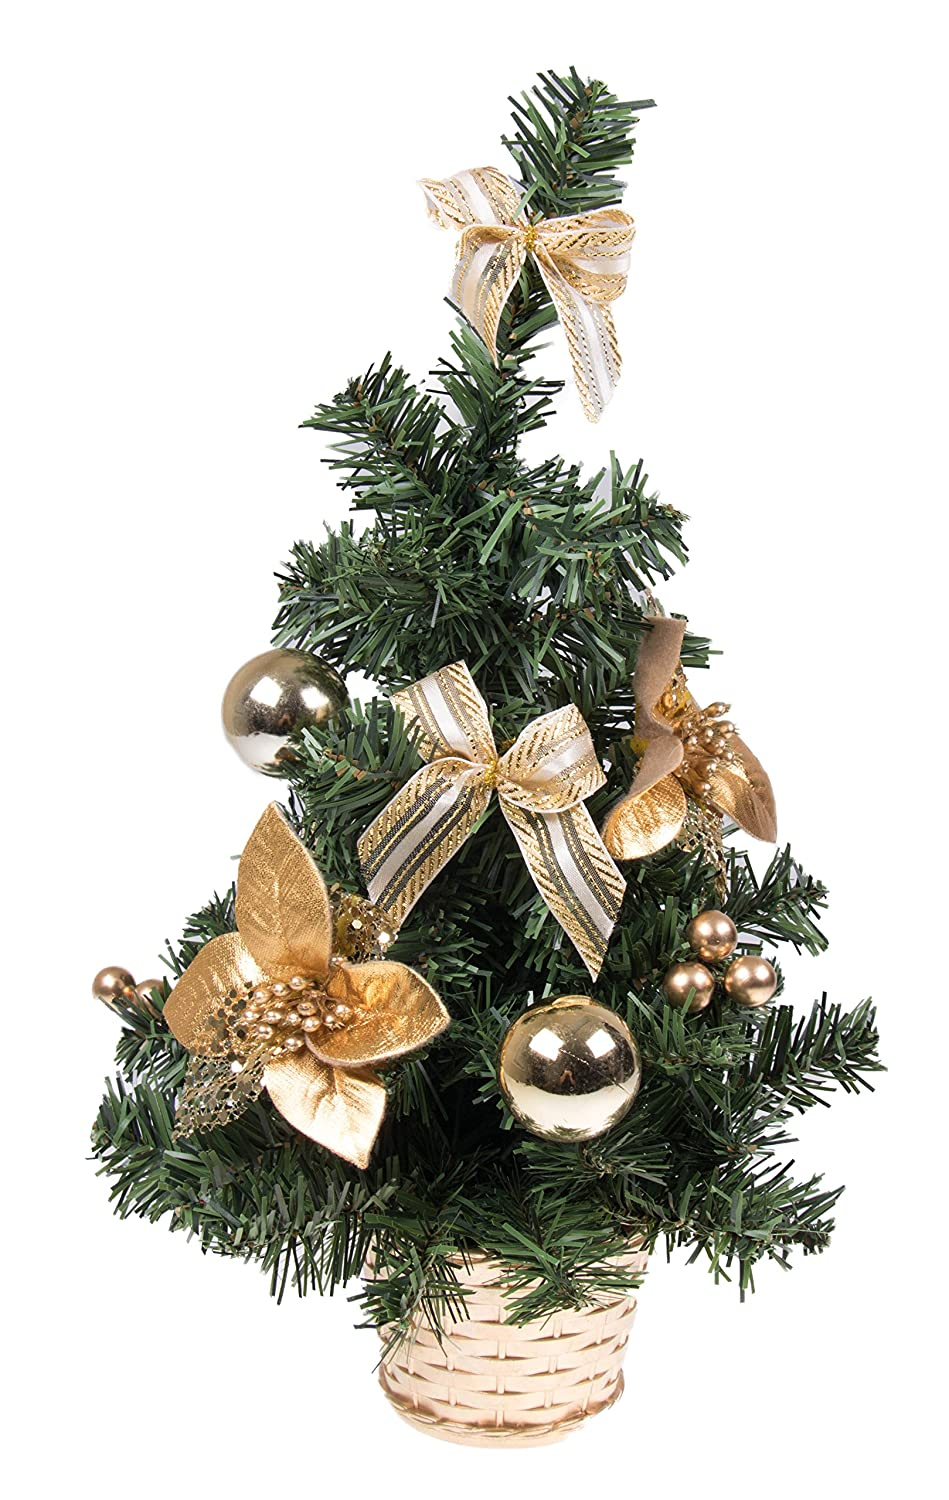 Swell Mini Artificial Christmas Tree With Gold Bows By Clever Creations Best Choice Christmas Decoration For Table And Desk Tops Small 16 Tall Home Interior And Landscaping Ologienasavecom